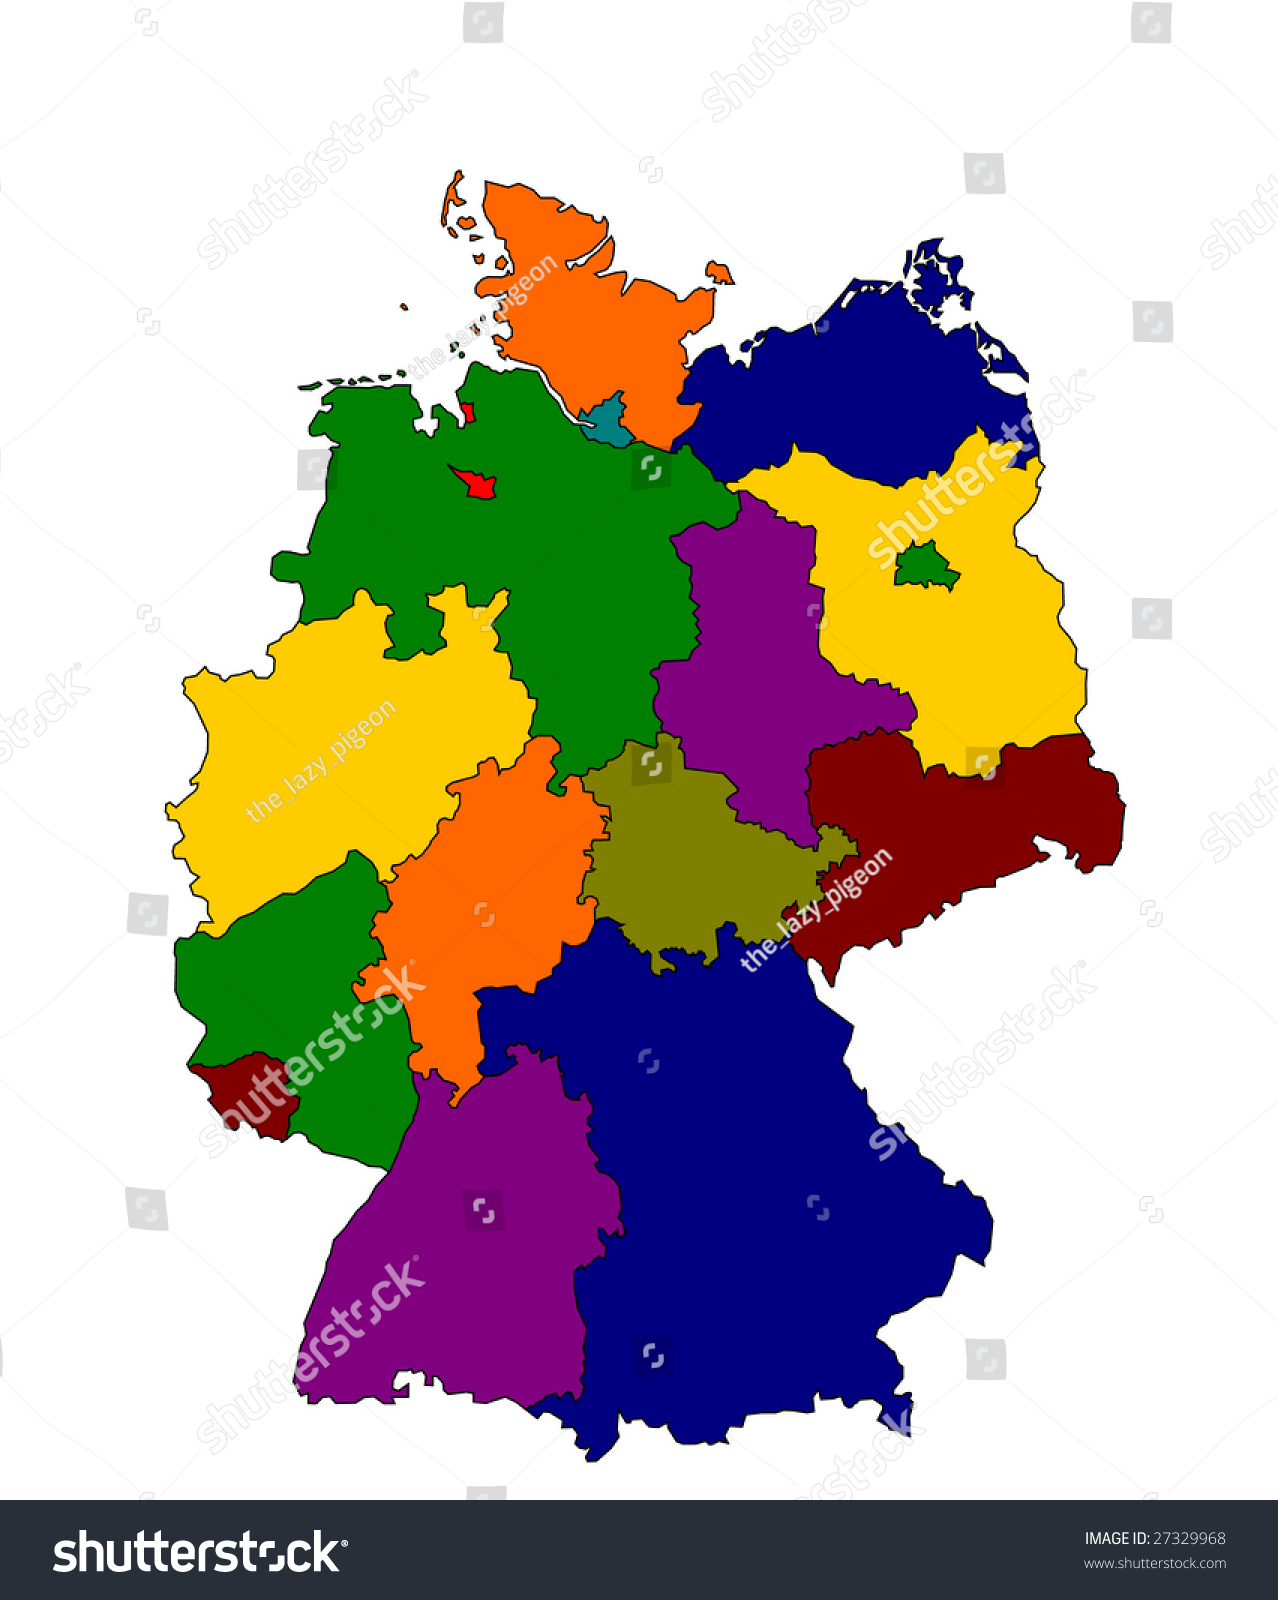 Royalty Free Stock Illustration Of Detailed Map Germany Stock